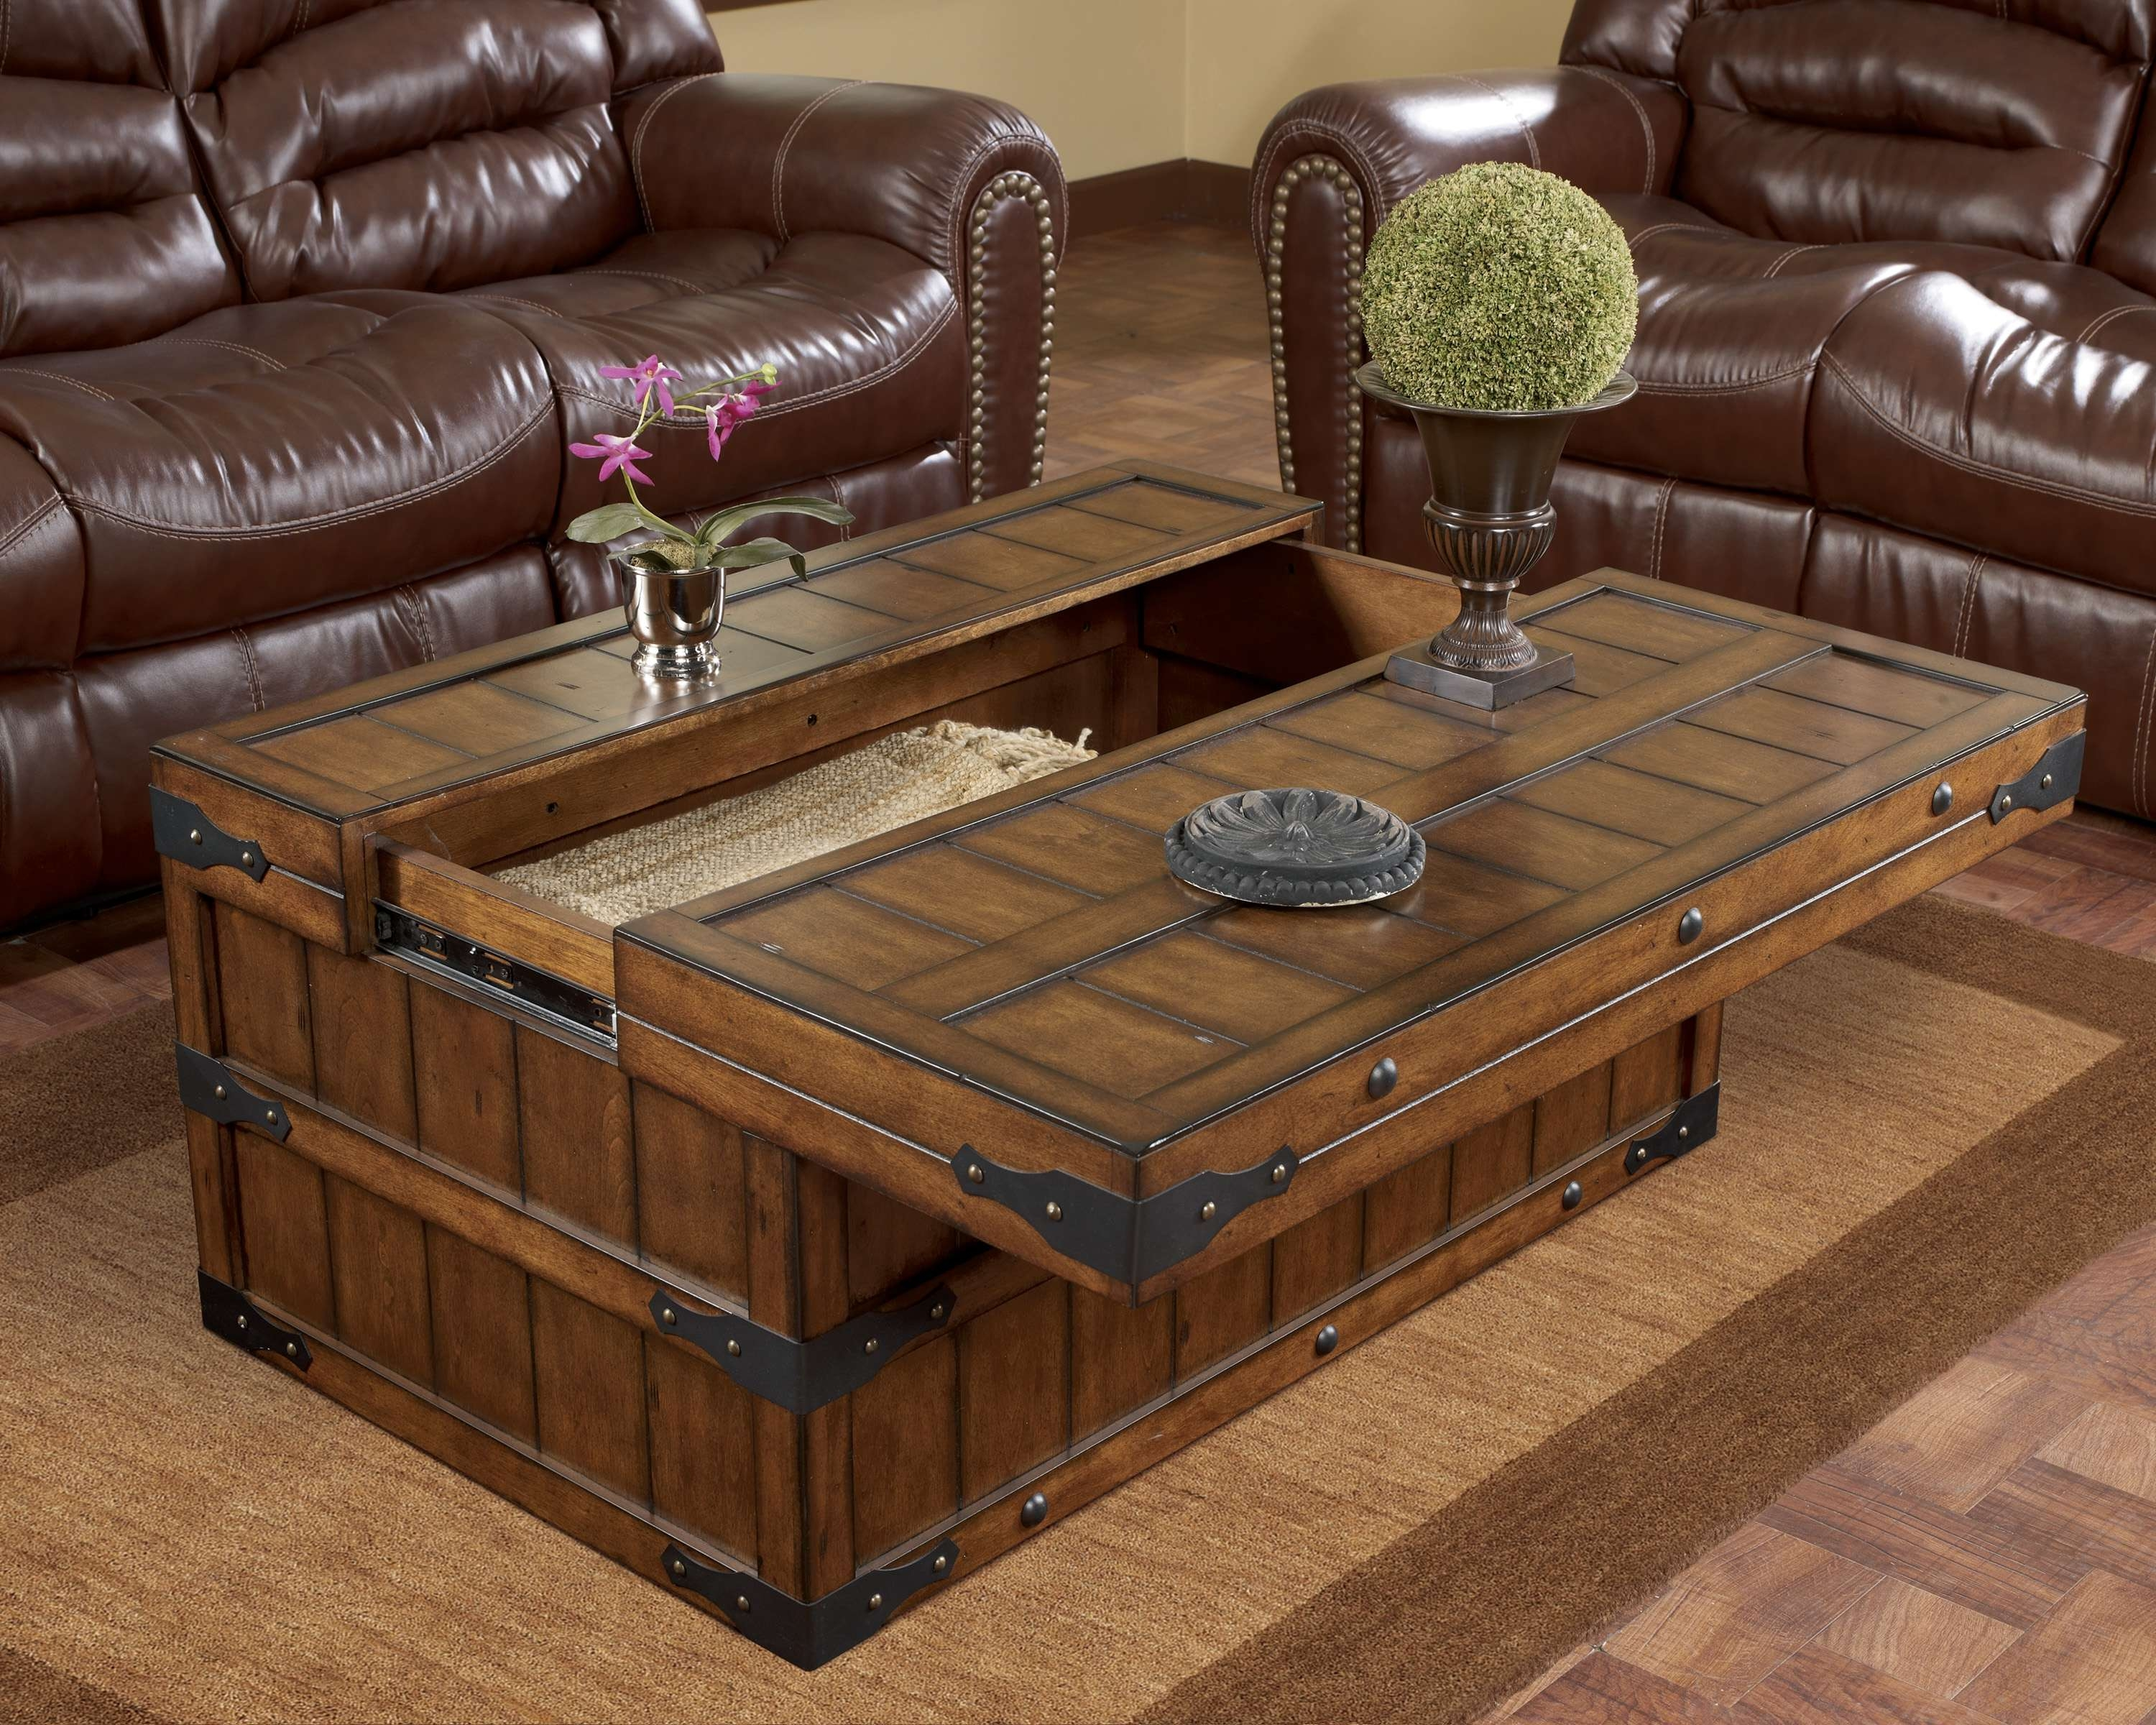 Most Popular Dark Wood Coffee Table Storages Intended For Coffee Table : Wonderful Farmhouse Style Coffee Table Reclaimed (View 5 of 10)